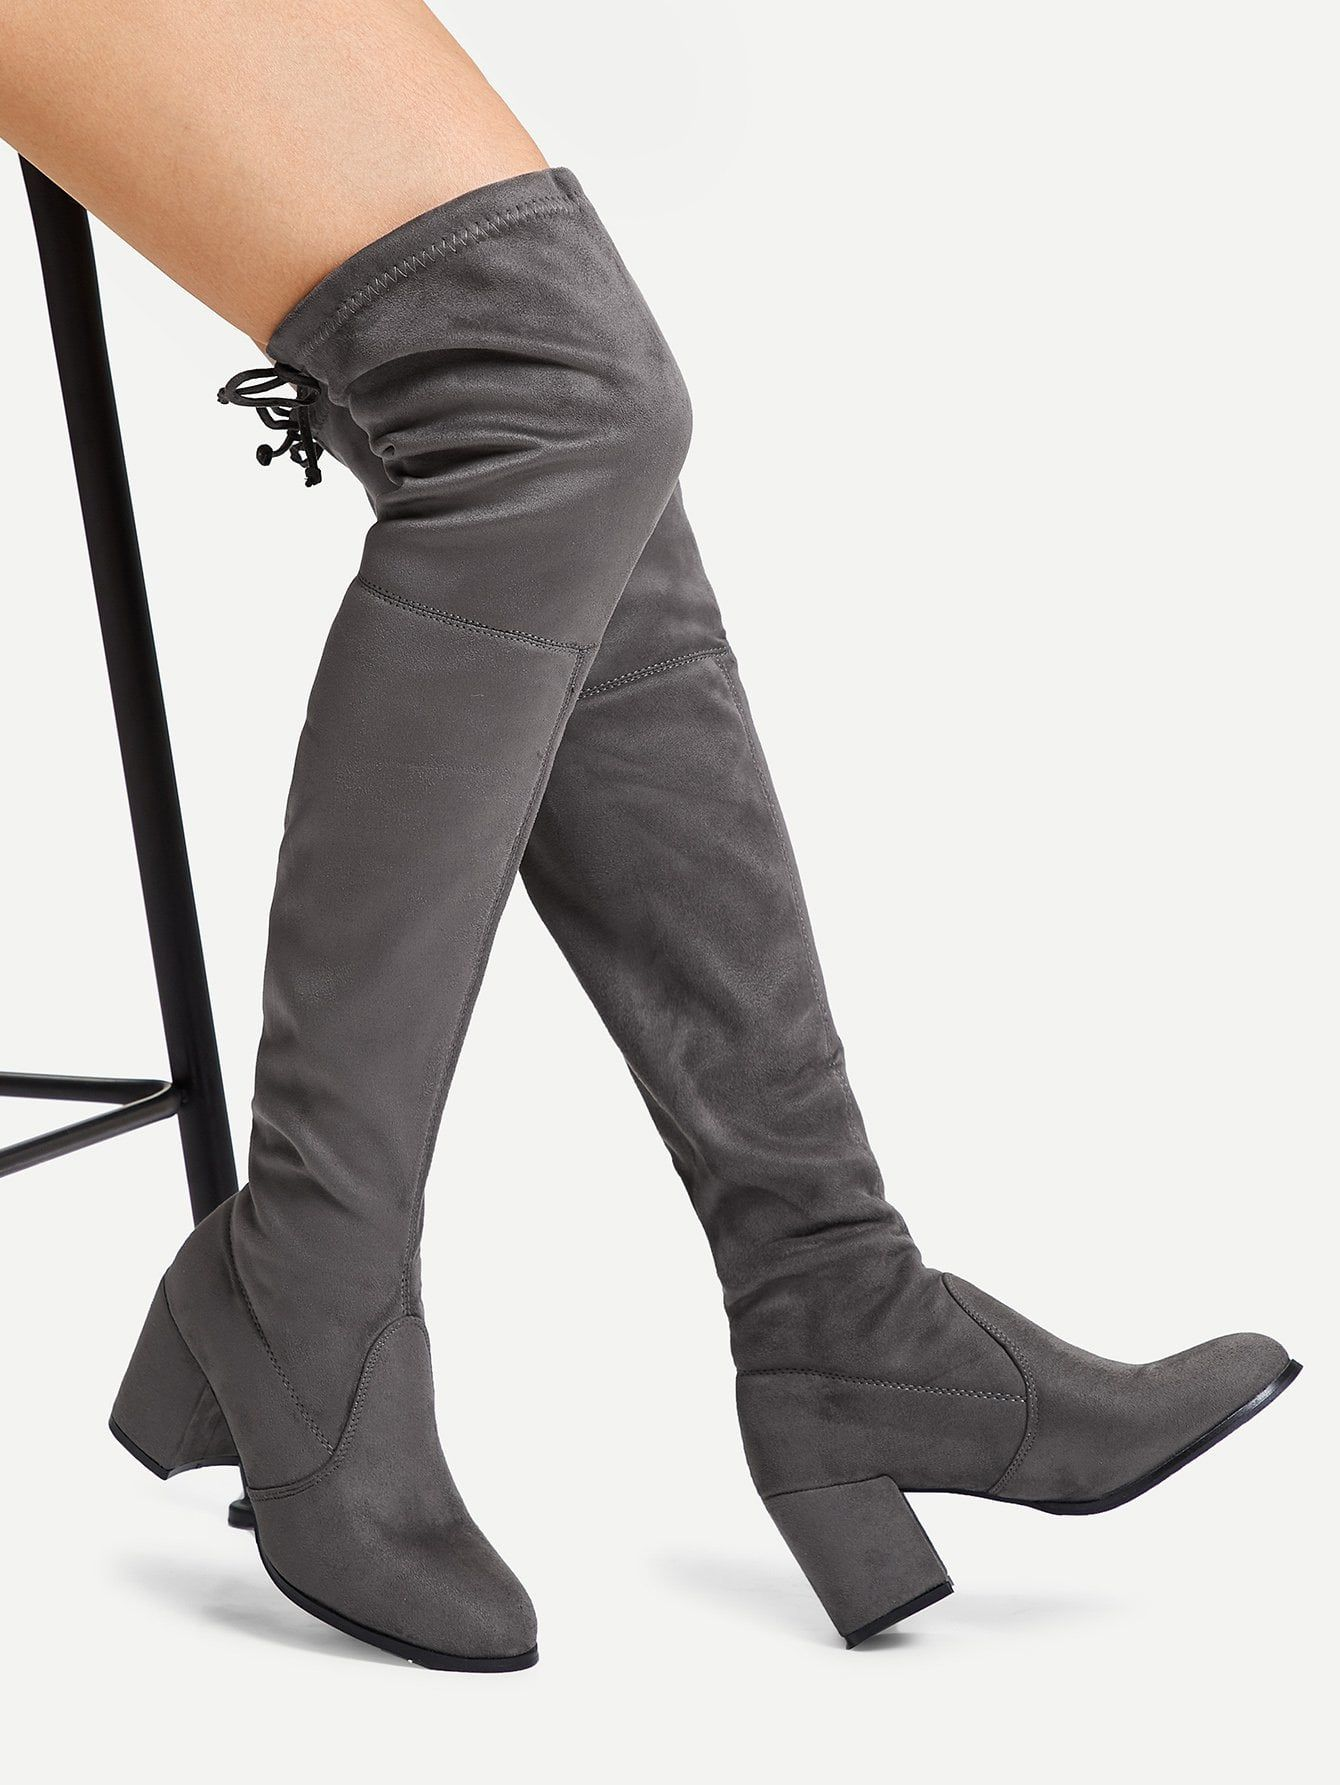 ffbde0df25 Tie Back Over Knee Block Heeled Boots. Elegant Almond Toe OTK/Thigh High No  zipper Grey Mid Heel Chunky Suede Over The Knee Boots